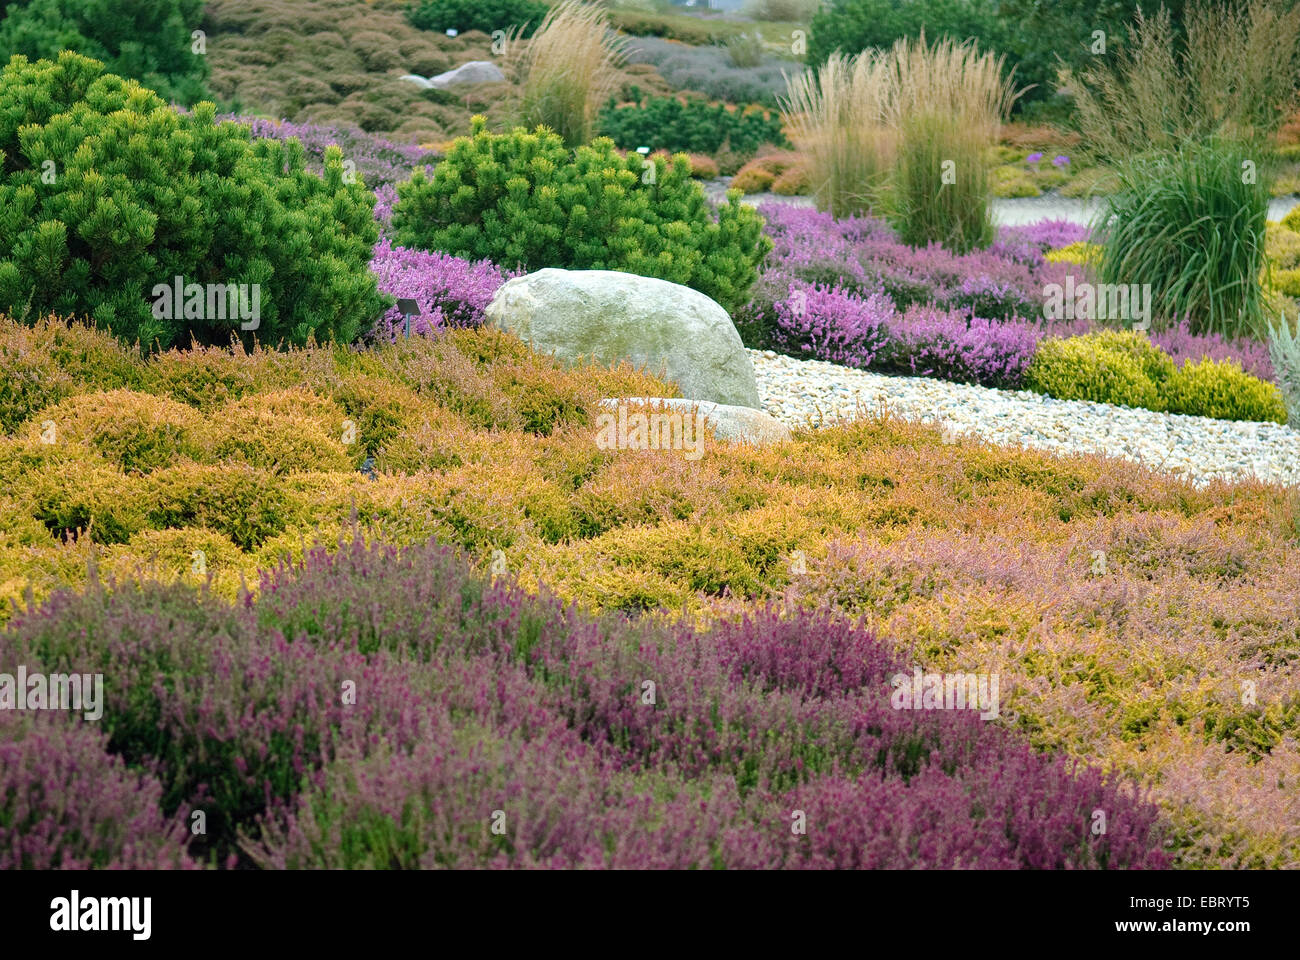 heather, ling (Calluna vulgaris 'Firefly', Calluna vulgaris Firefly), cultivar Firefly together with other - Stock Image